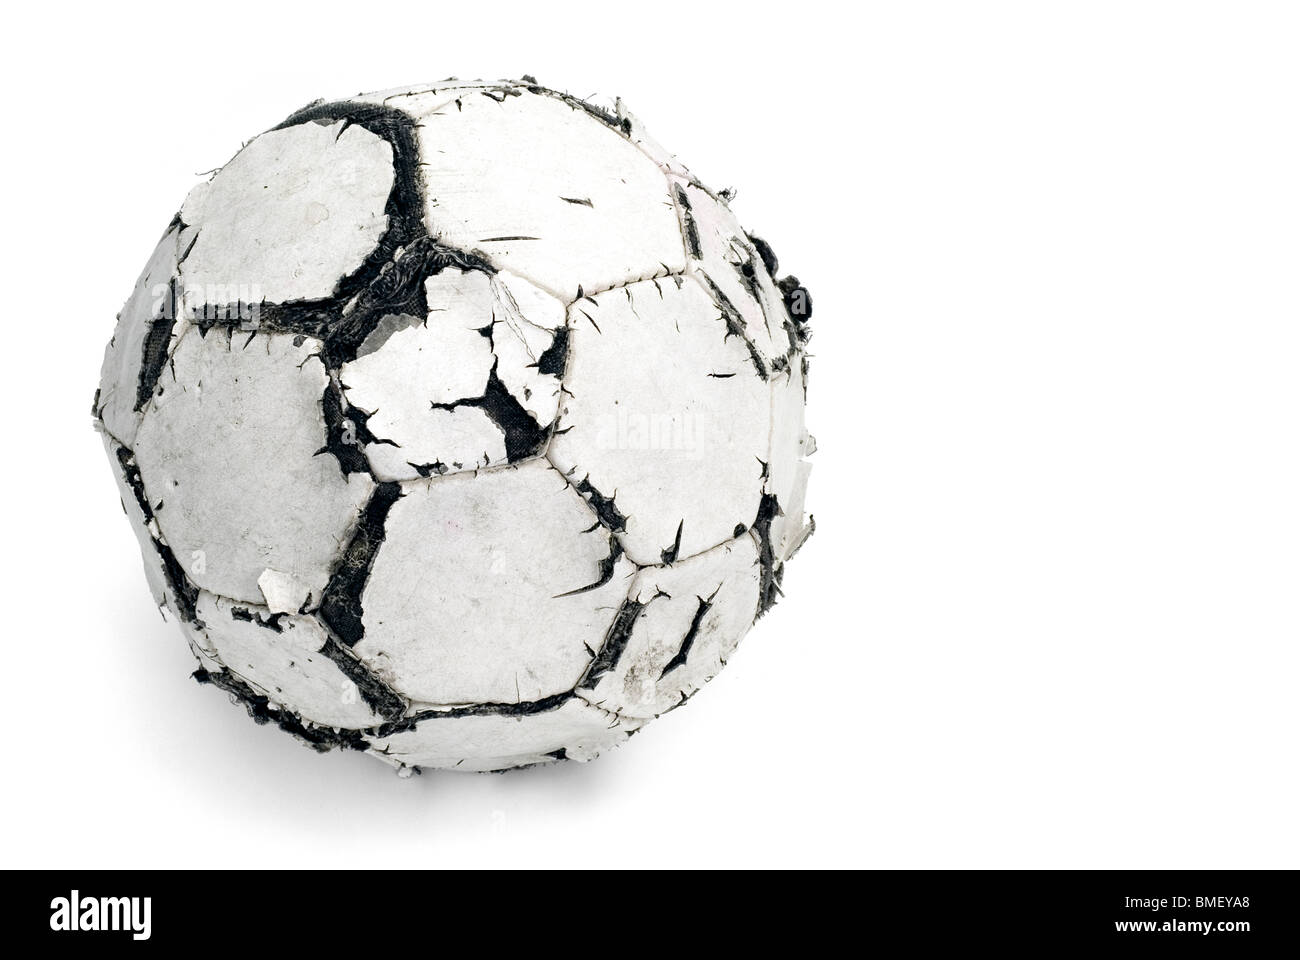 Game over old football - Stock Image